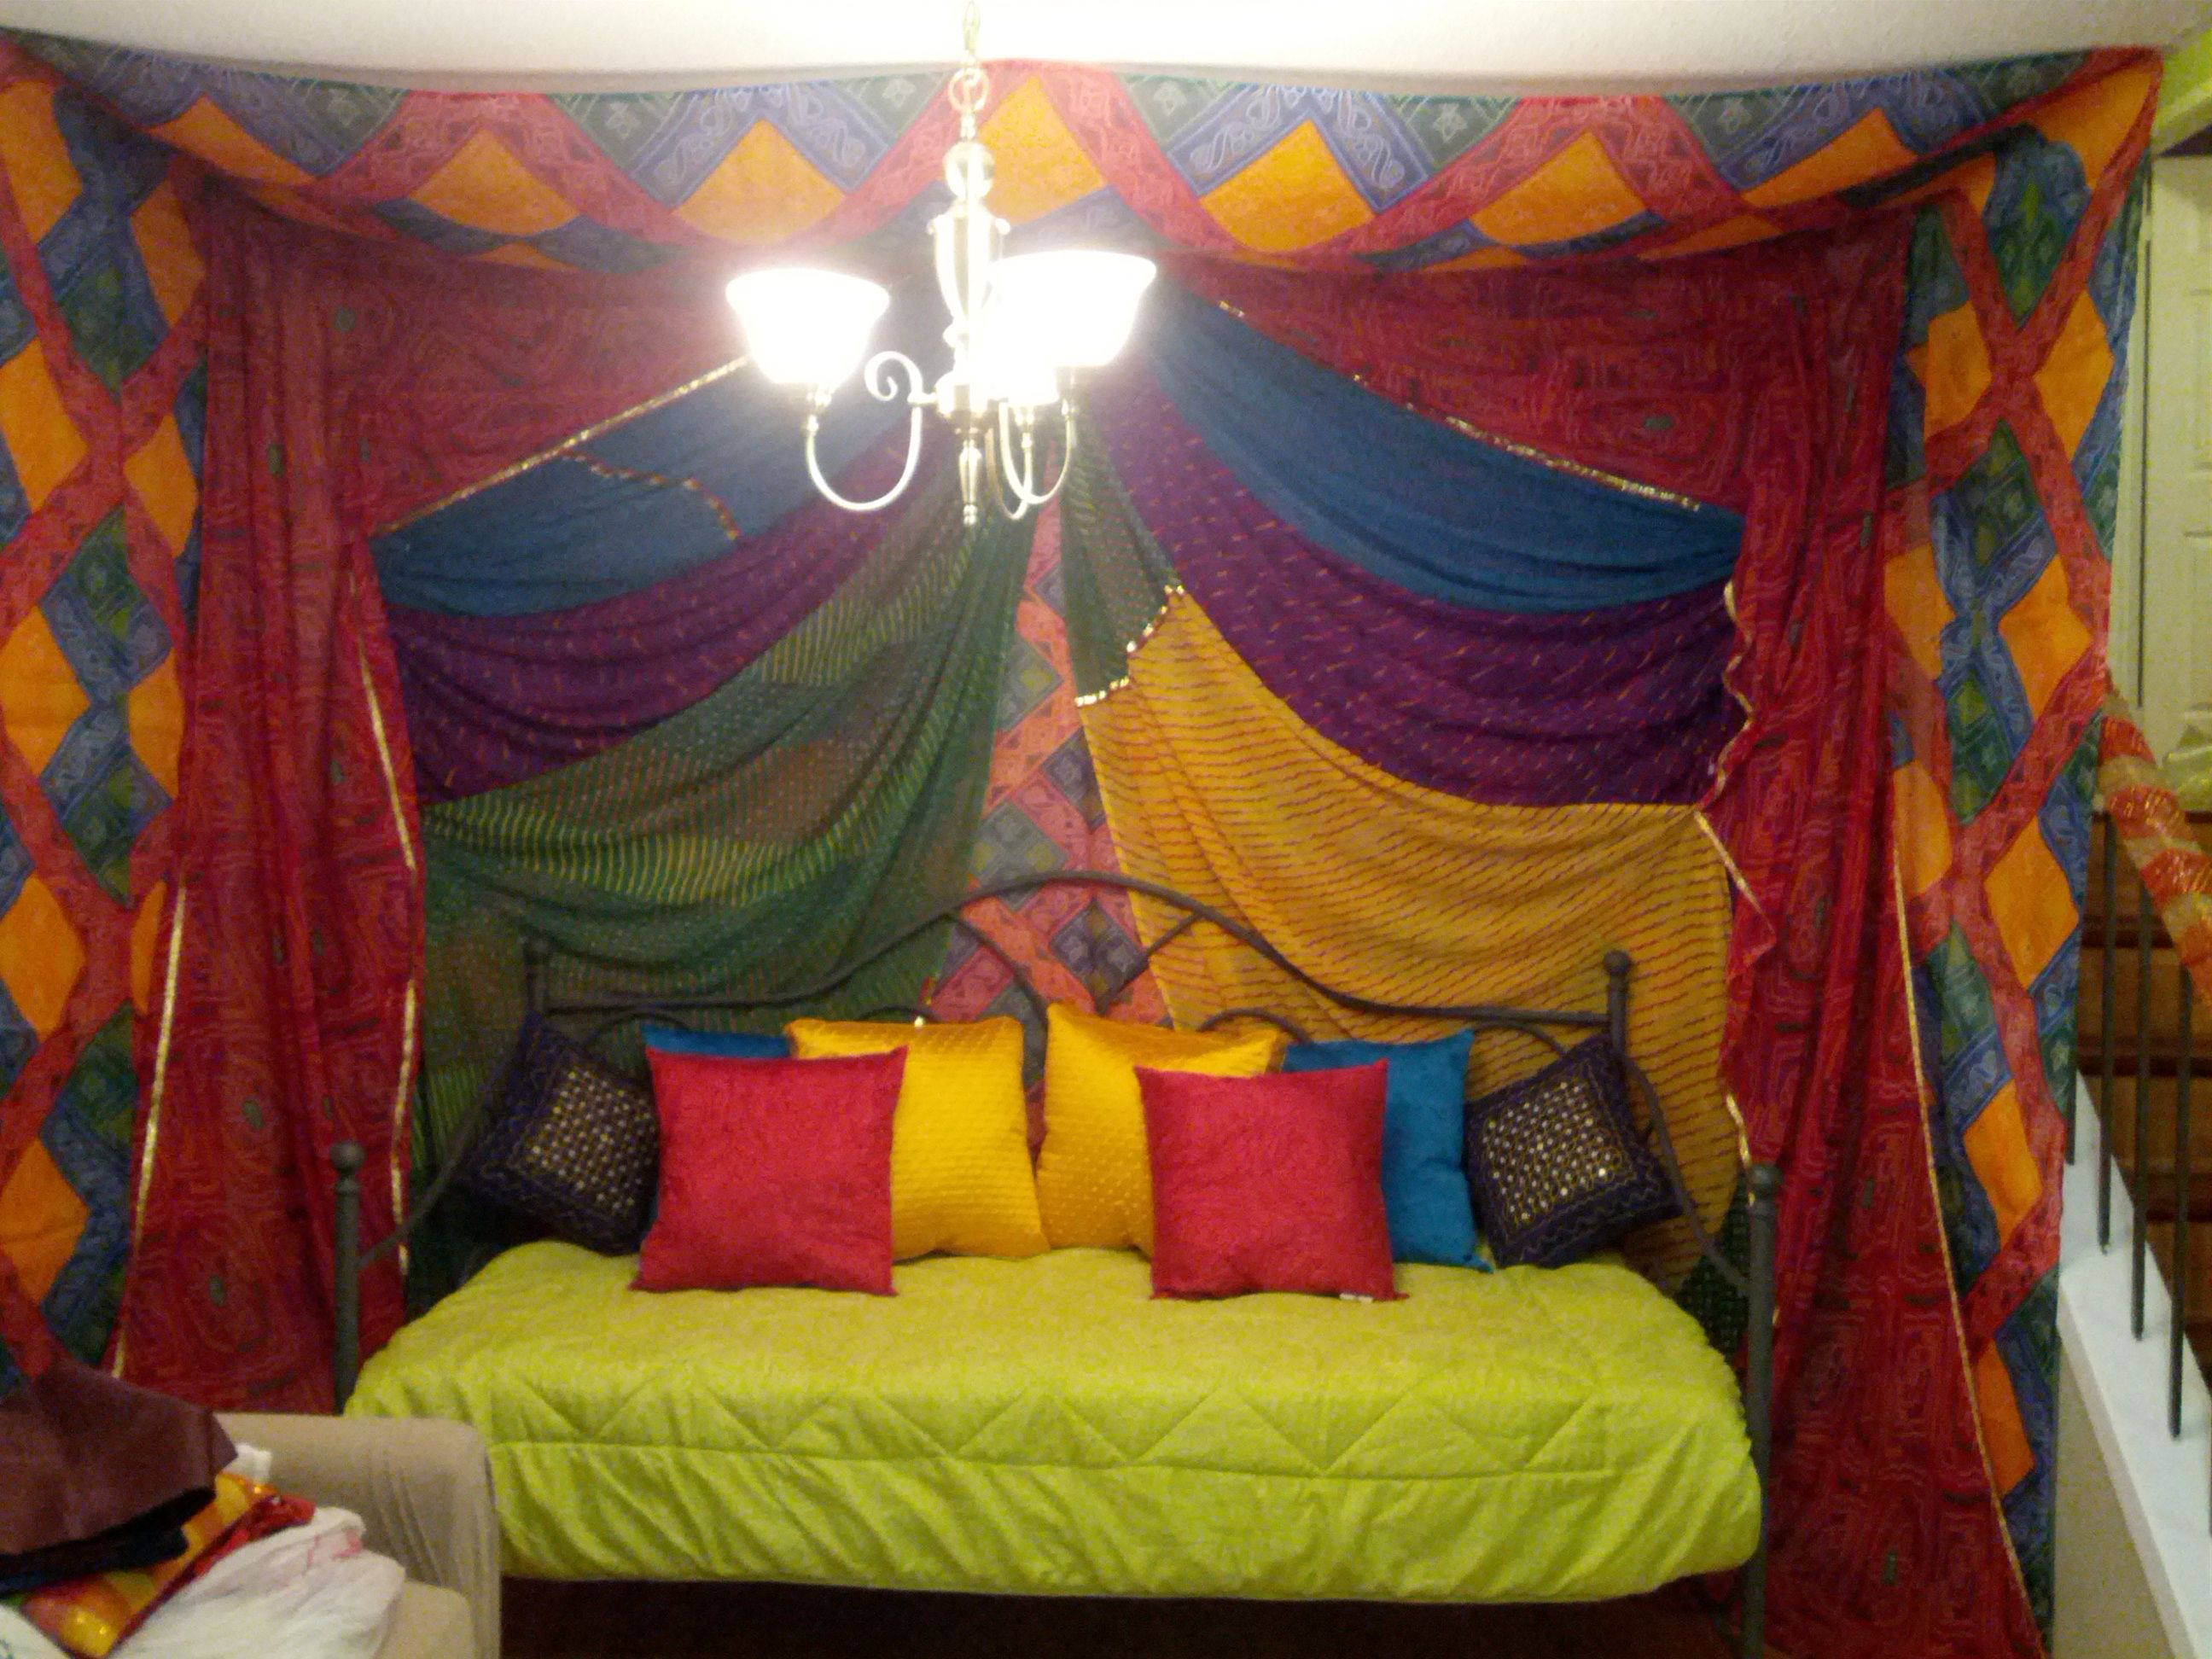 Indian wedding decor at home for a rajasthani inspired for Wedding decorations home